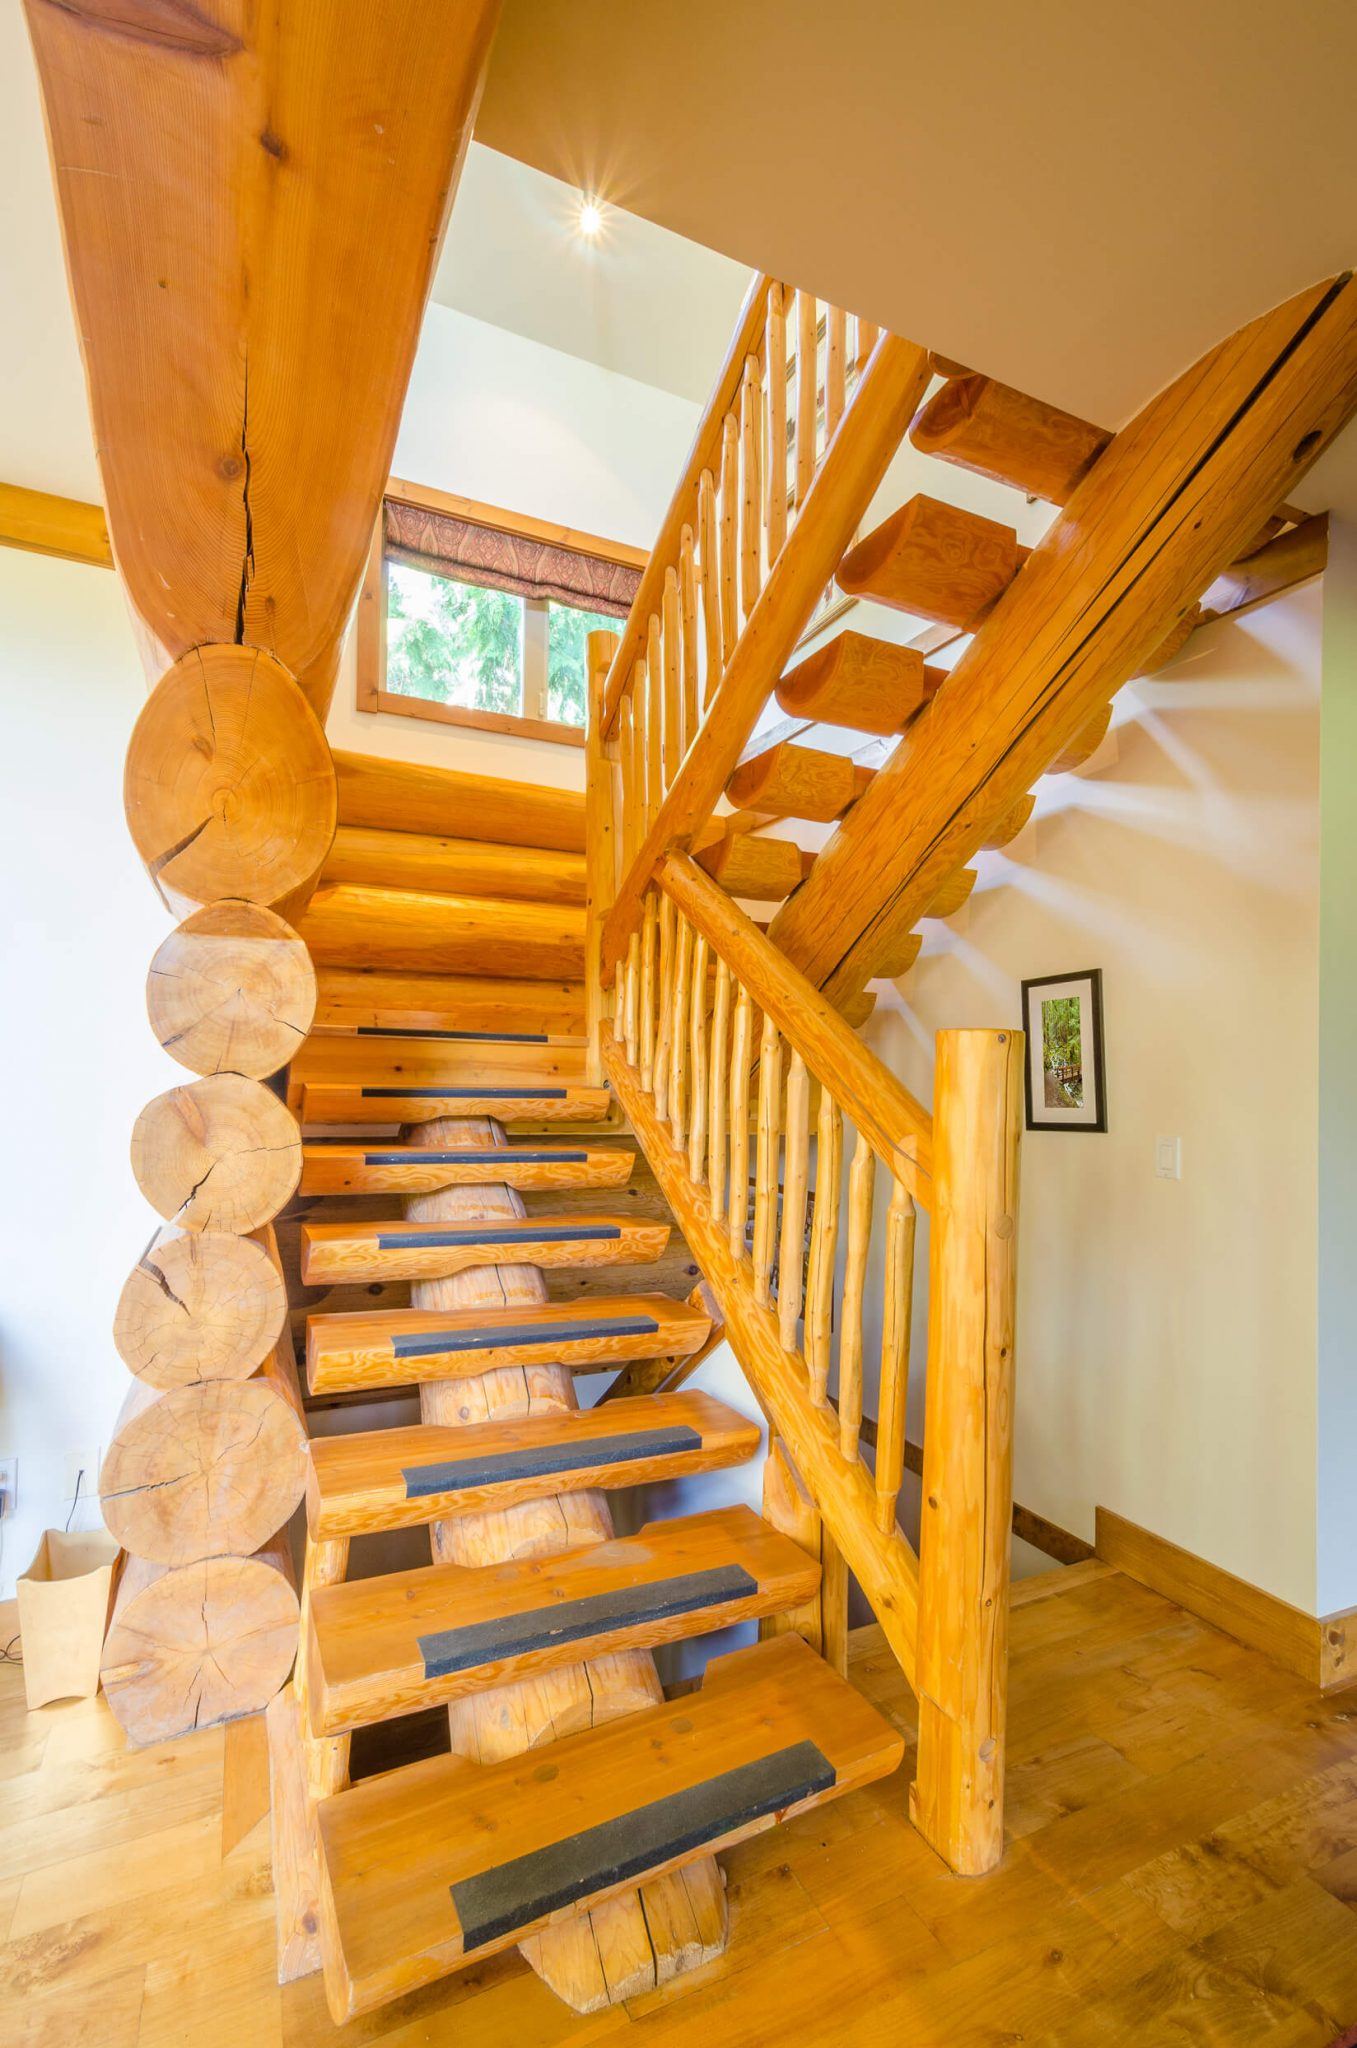 Log staircase with a single log stringer placing treads in groves. Baluster is also made of small logs.